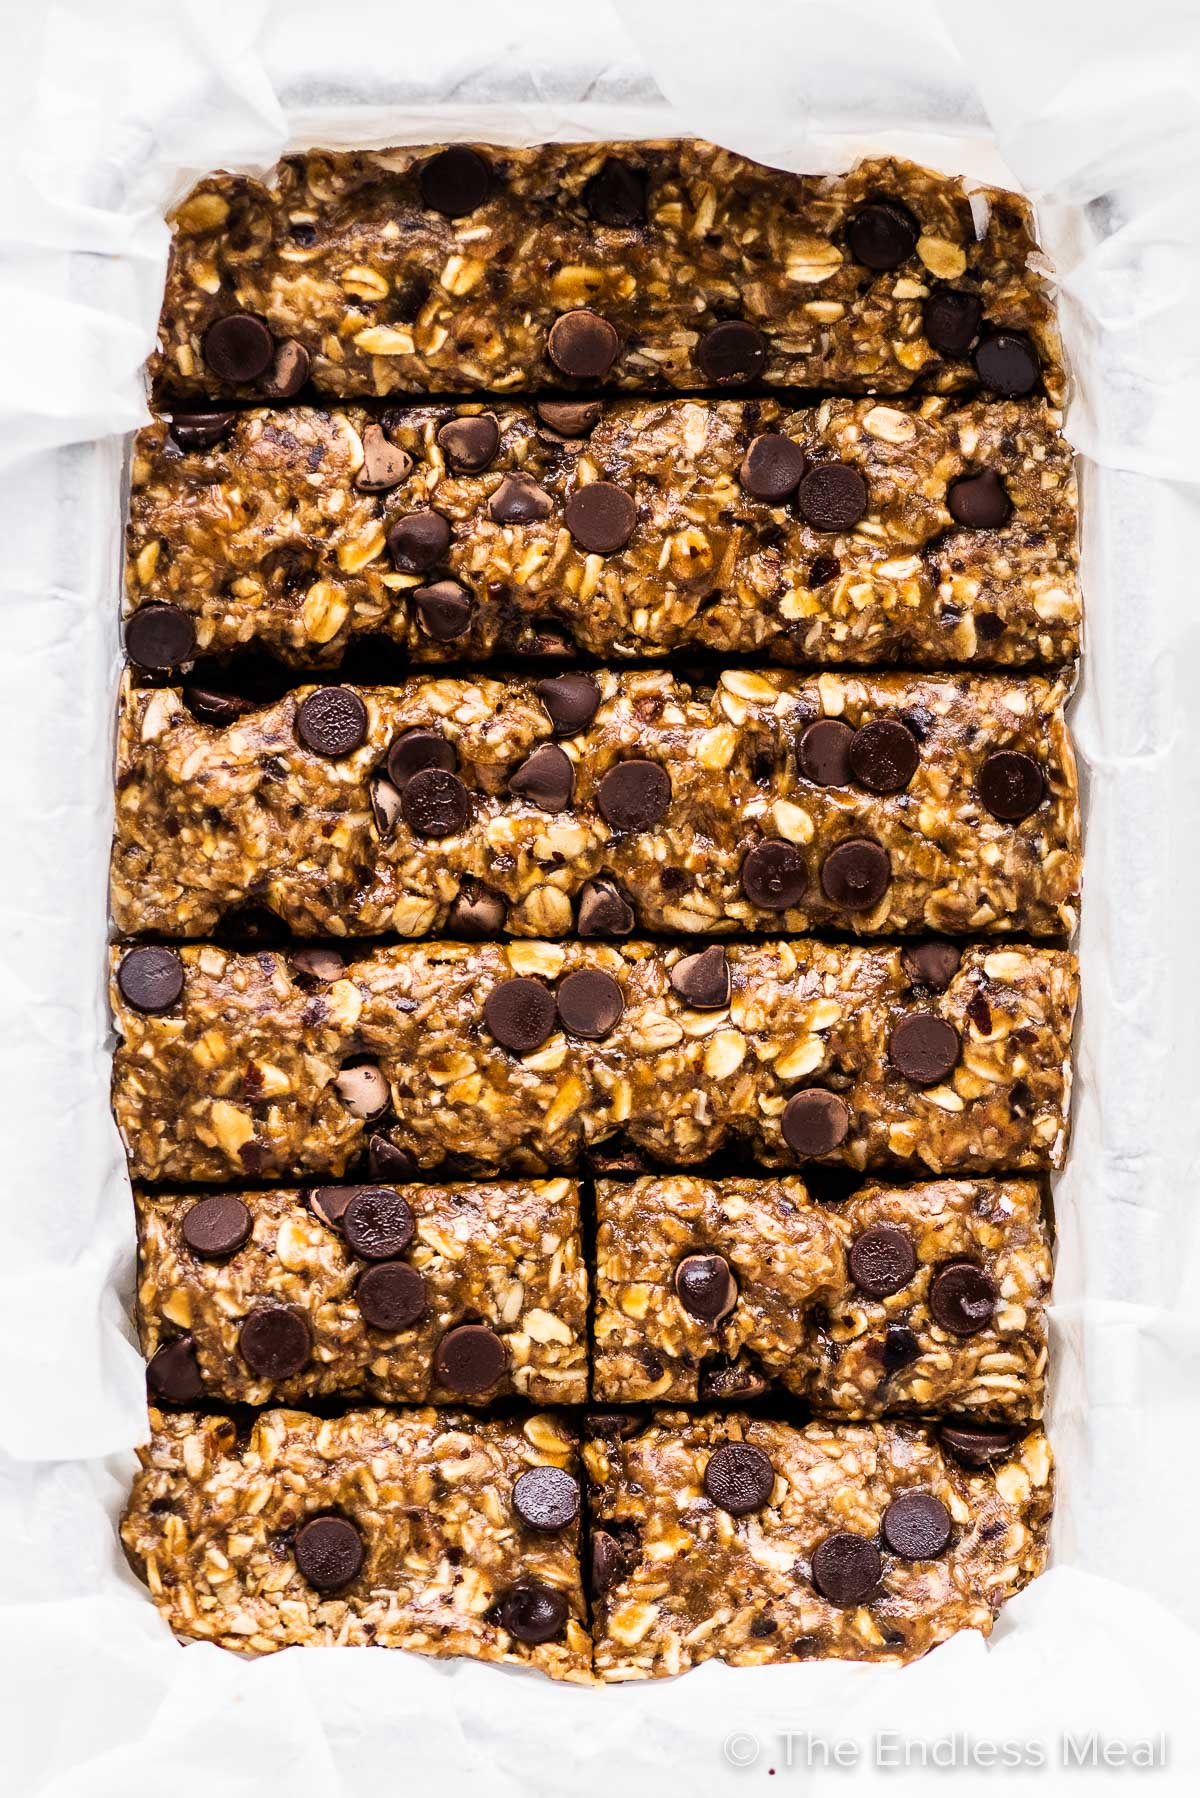 No nut granola bars with chocolate chips in a pan.